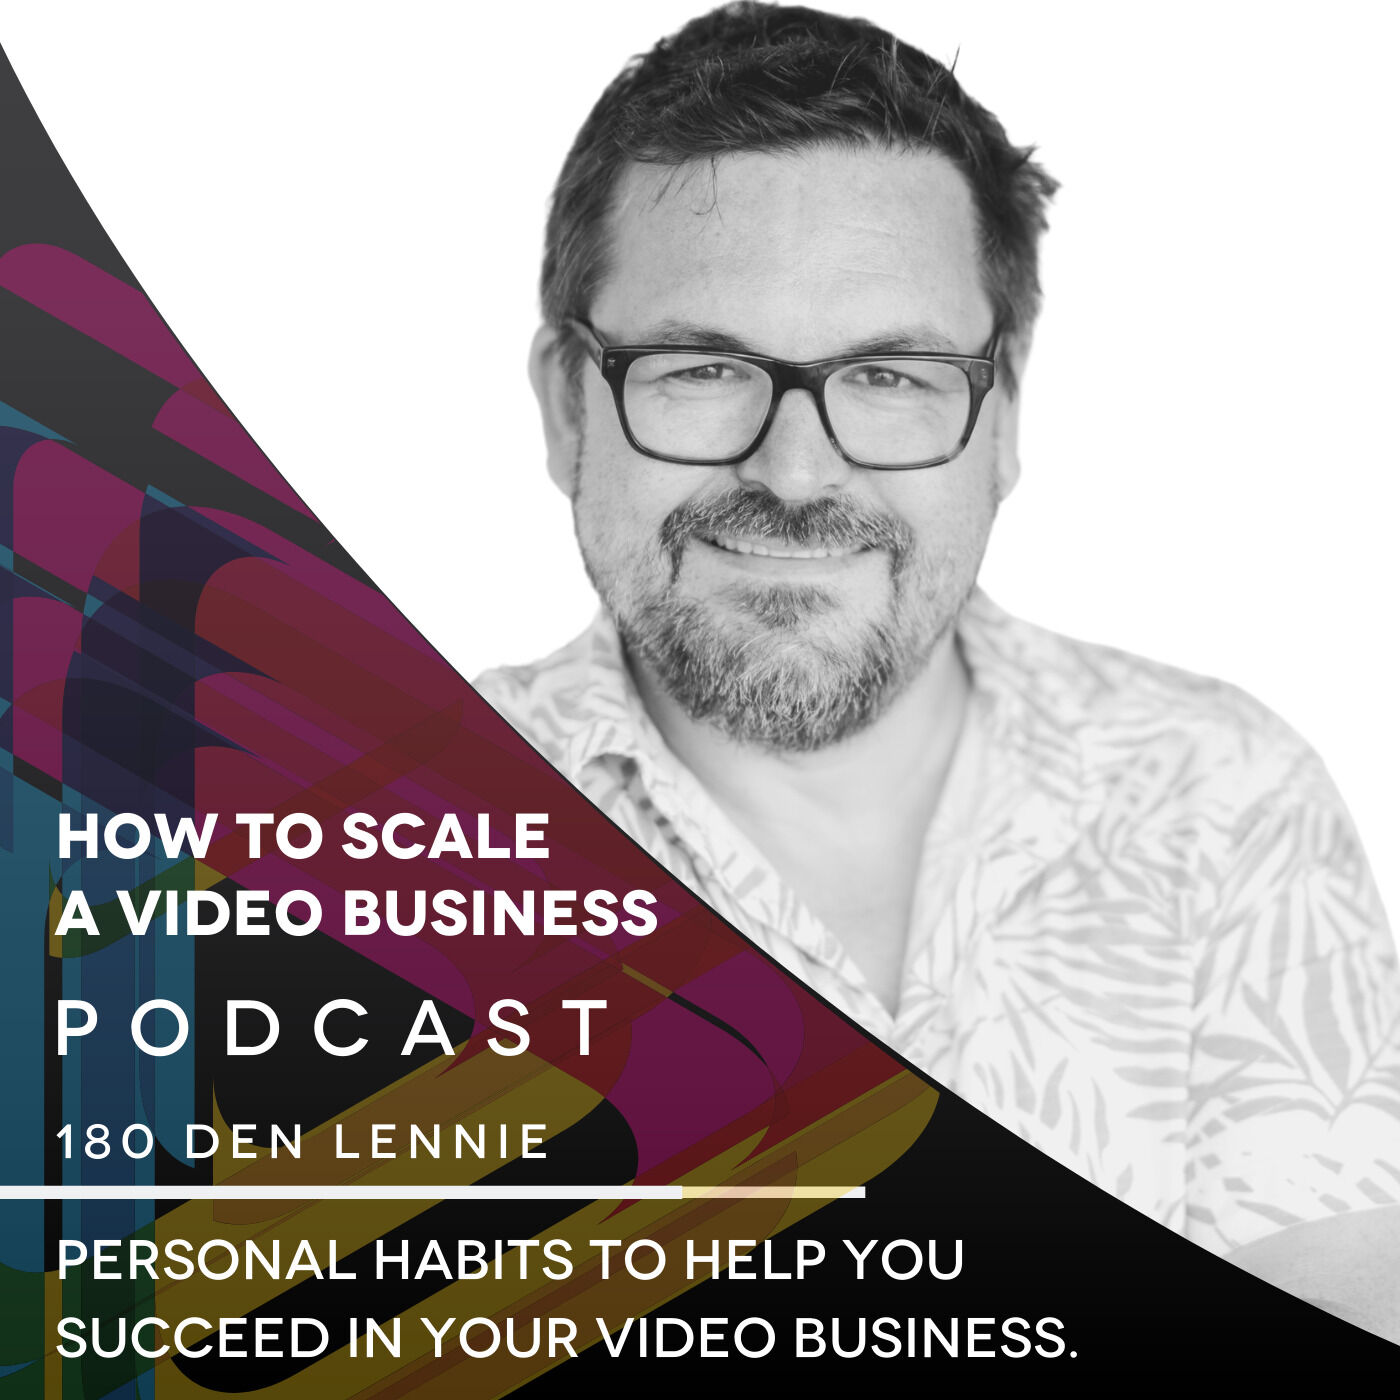 Personal Habits to help you succeed in your video business. EP #180 - Den Lennie